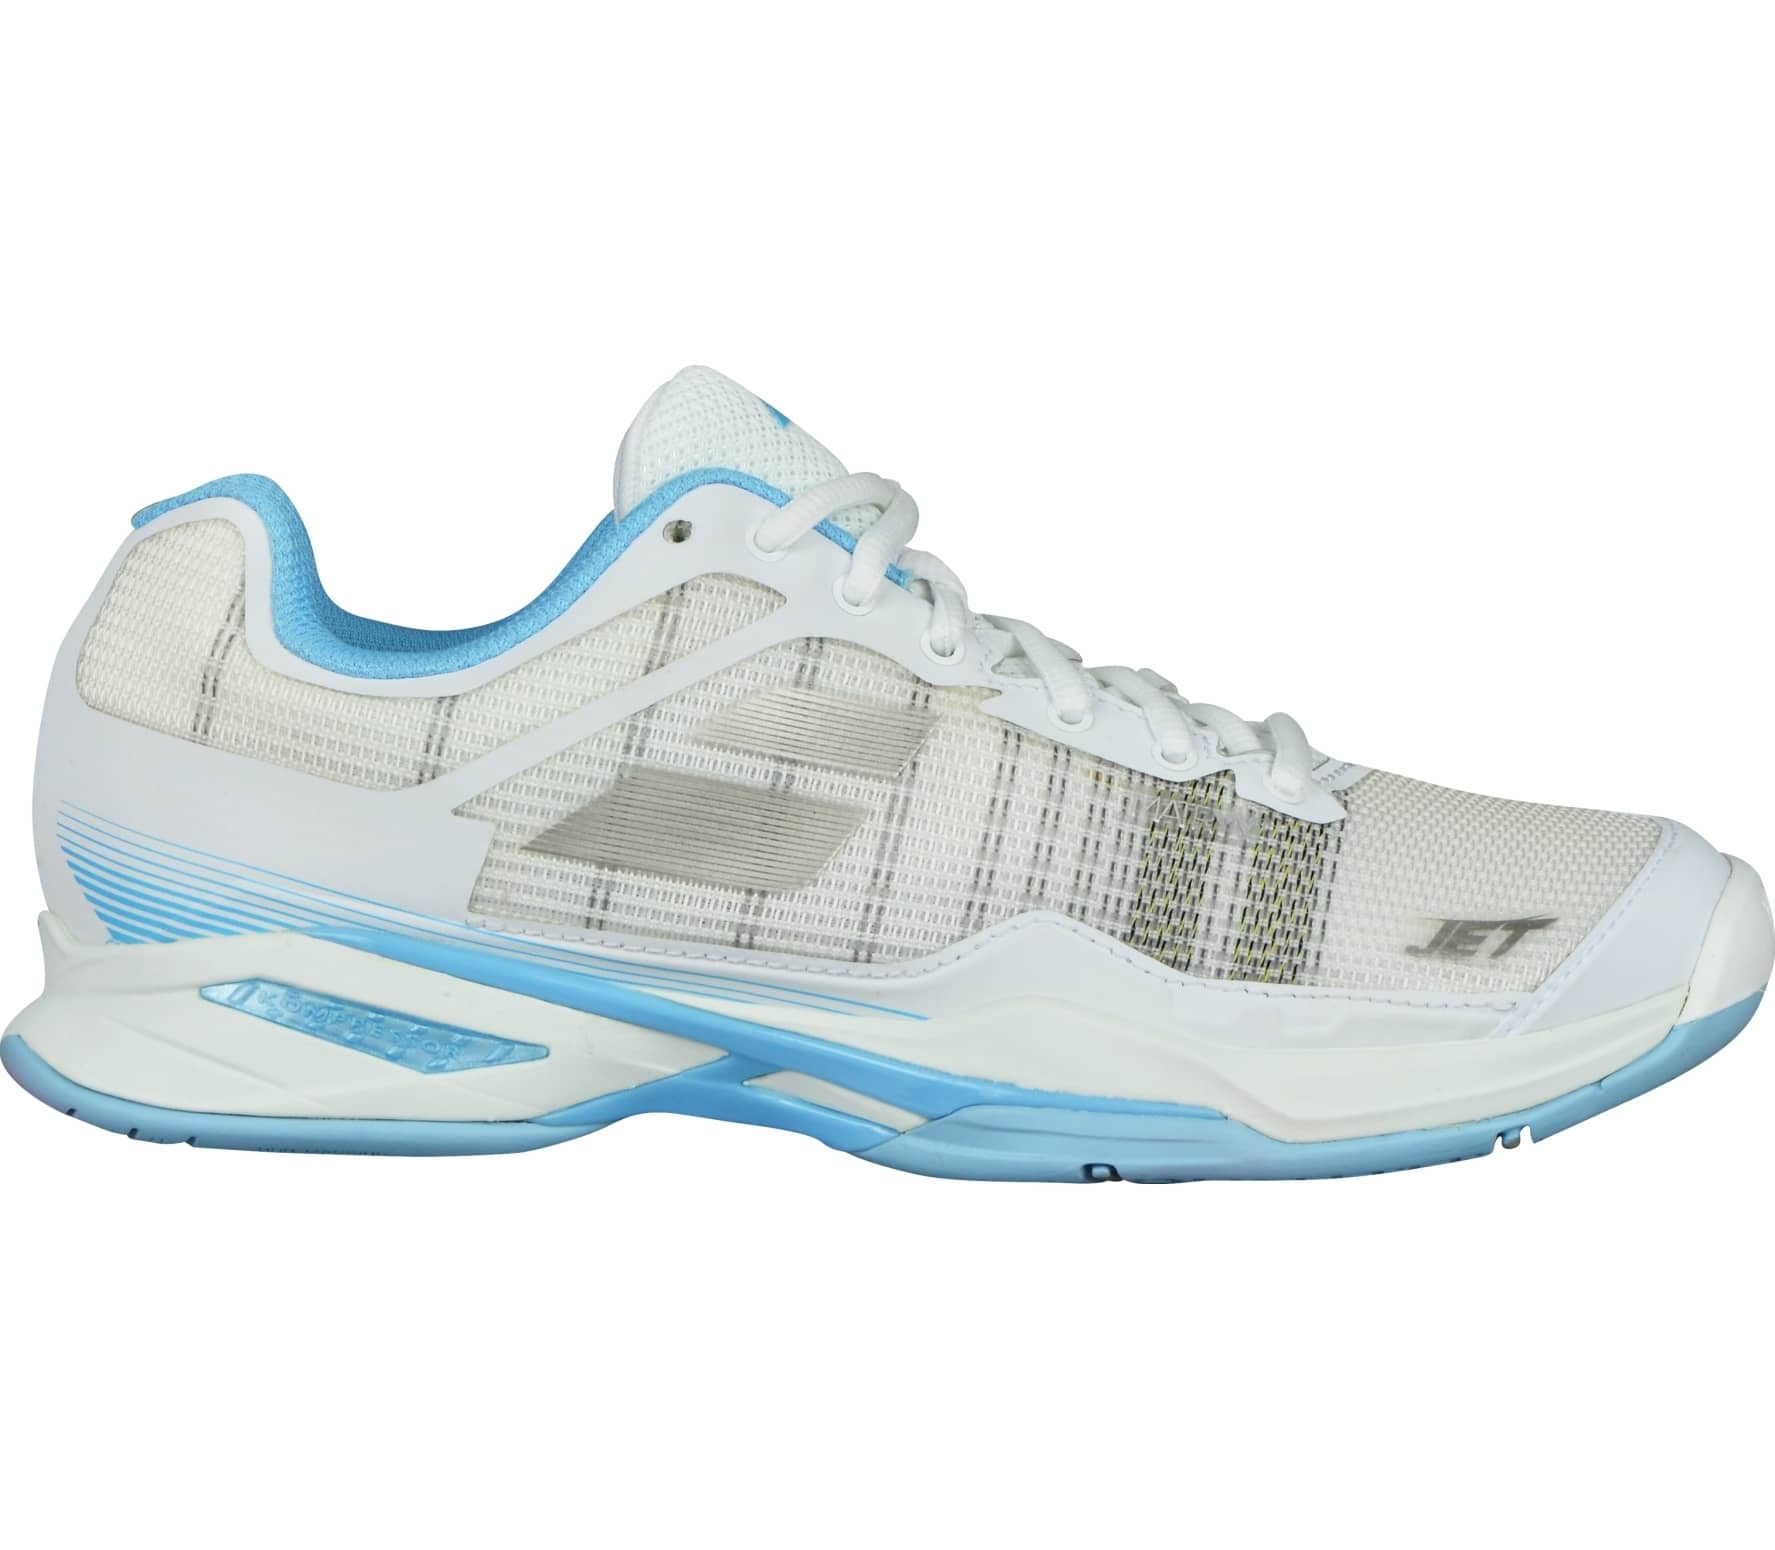 44fe90fd5414 Babolat - Jet Mach I Allcourt women s tennis shoes (white light blue ...